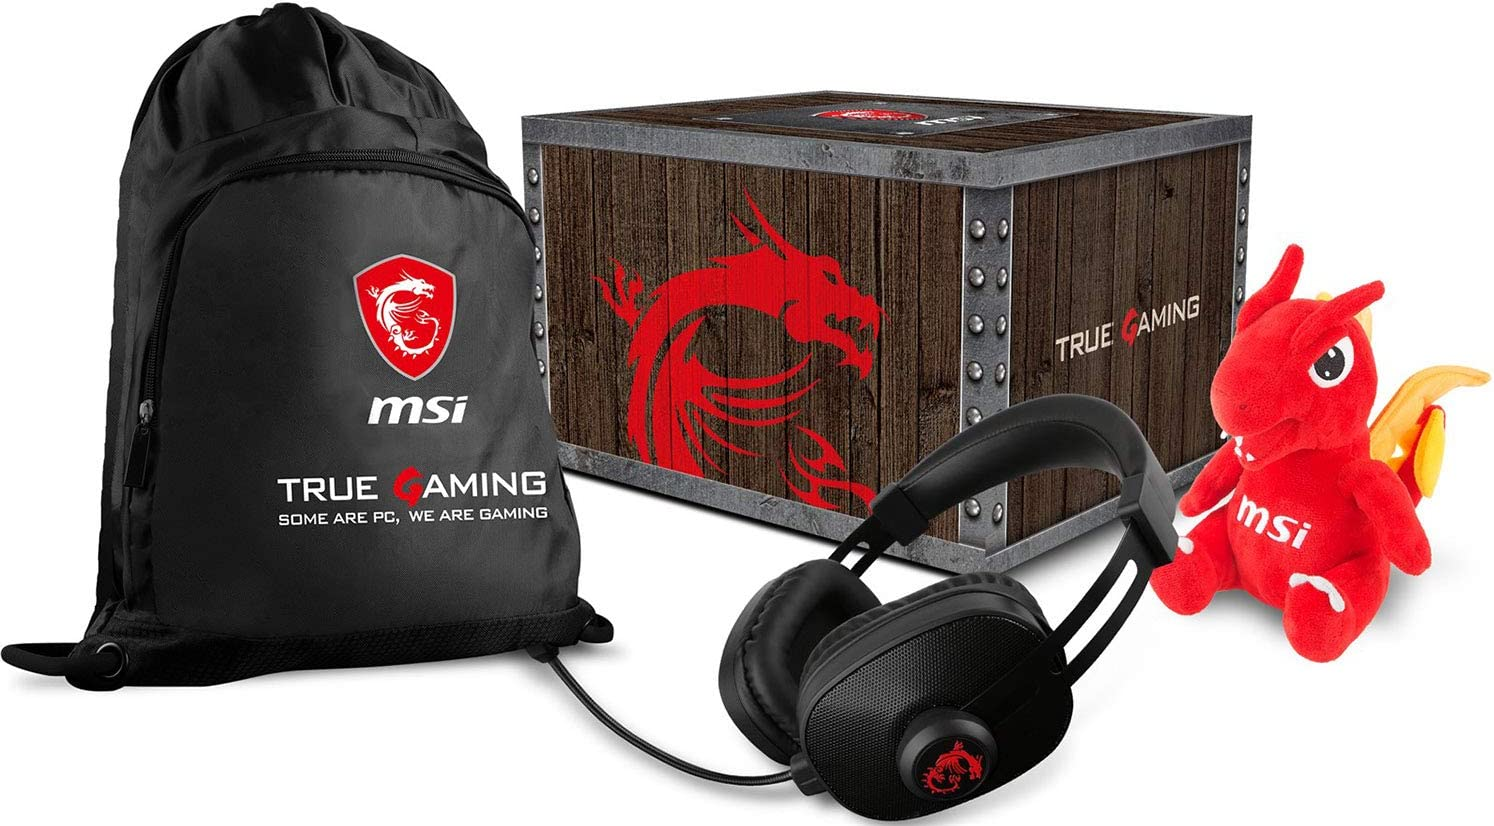 MSI Gaming Level Loot Box con Dragon Fever Gaming auriculares, bolsa y peluche de la suerte (957-1XXXXE-066): Amazon.es: Electrónica